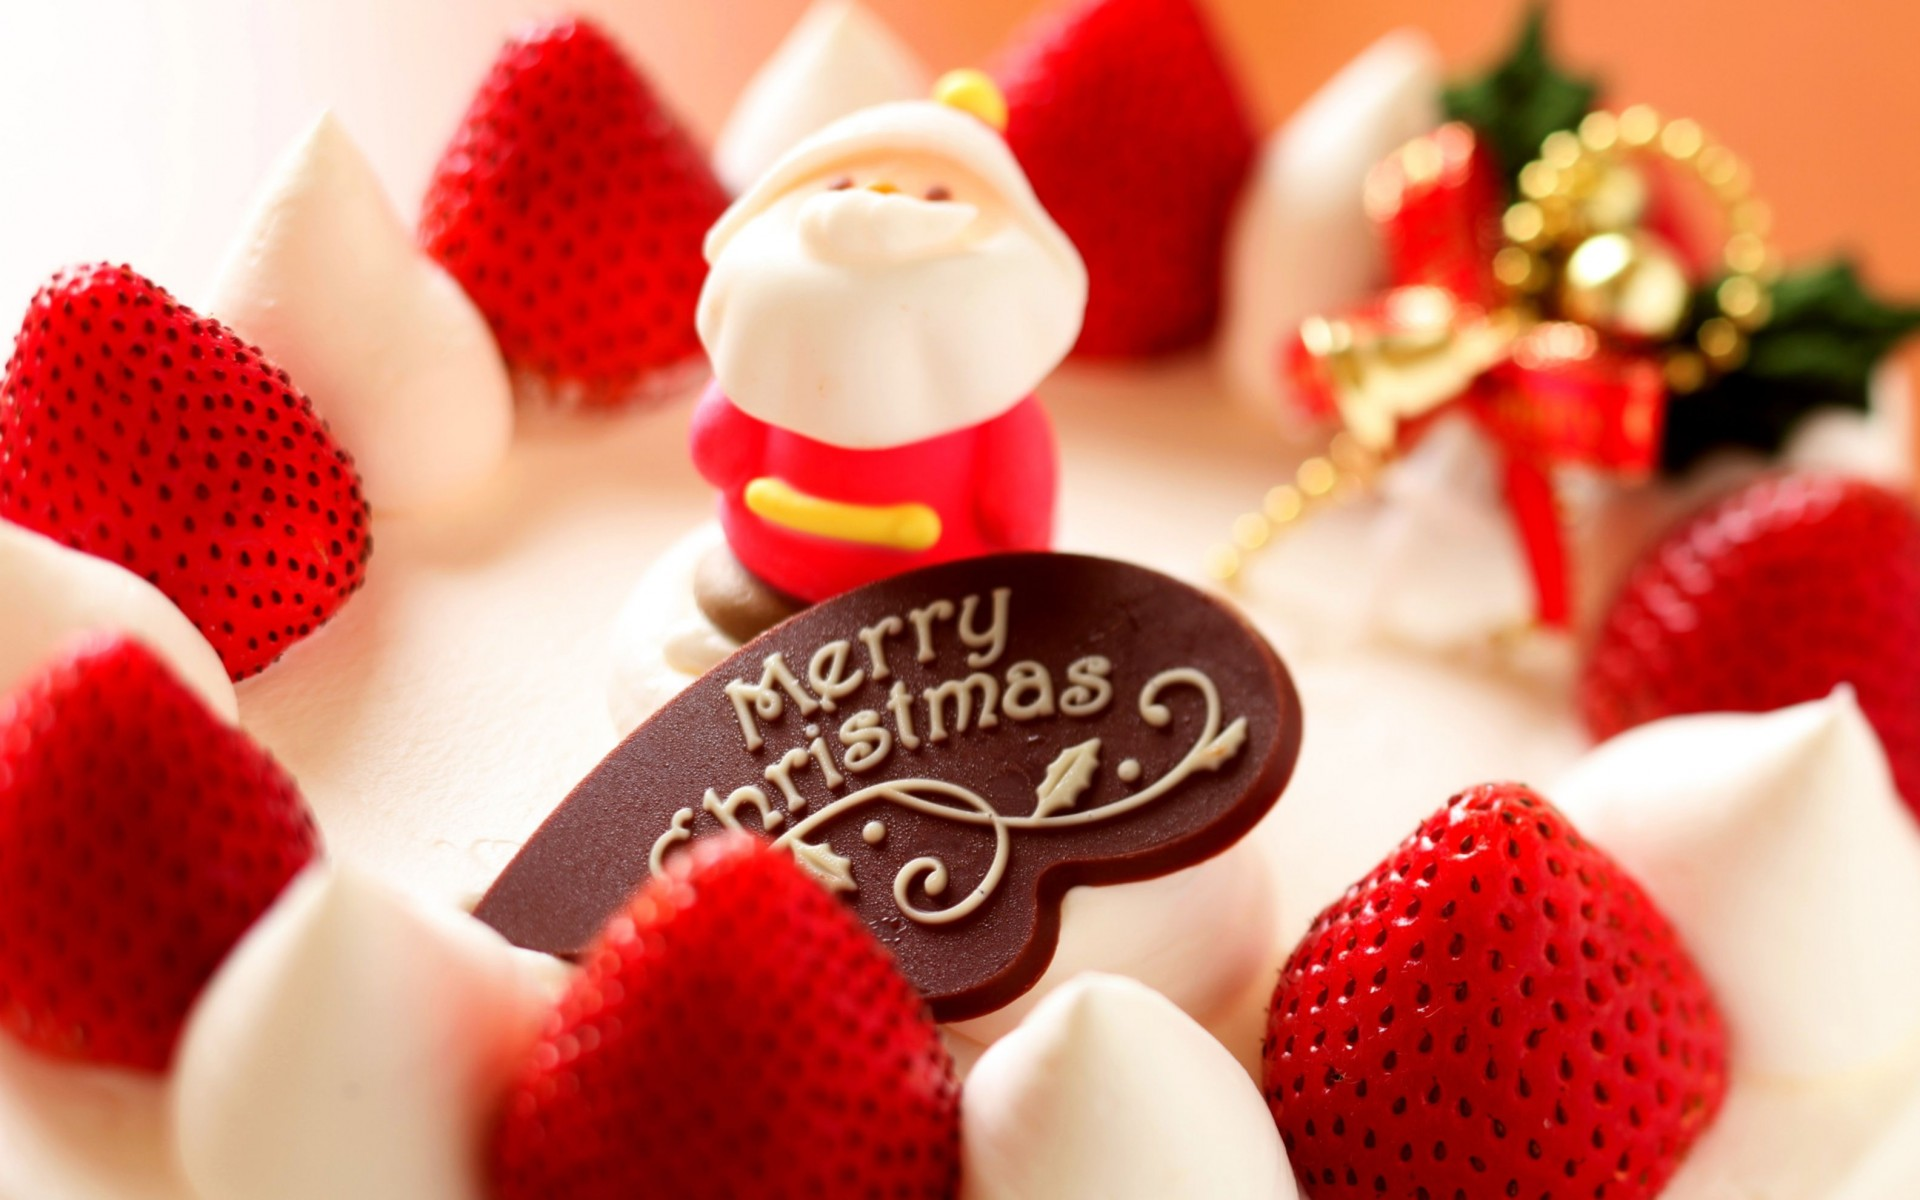 Merry Christmas Strawberry Dessert Wide Wallpaper